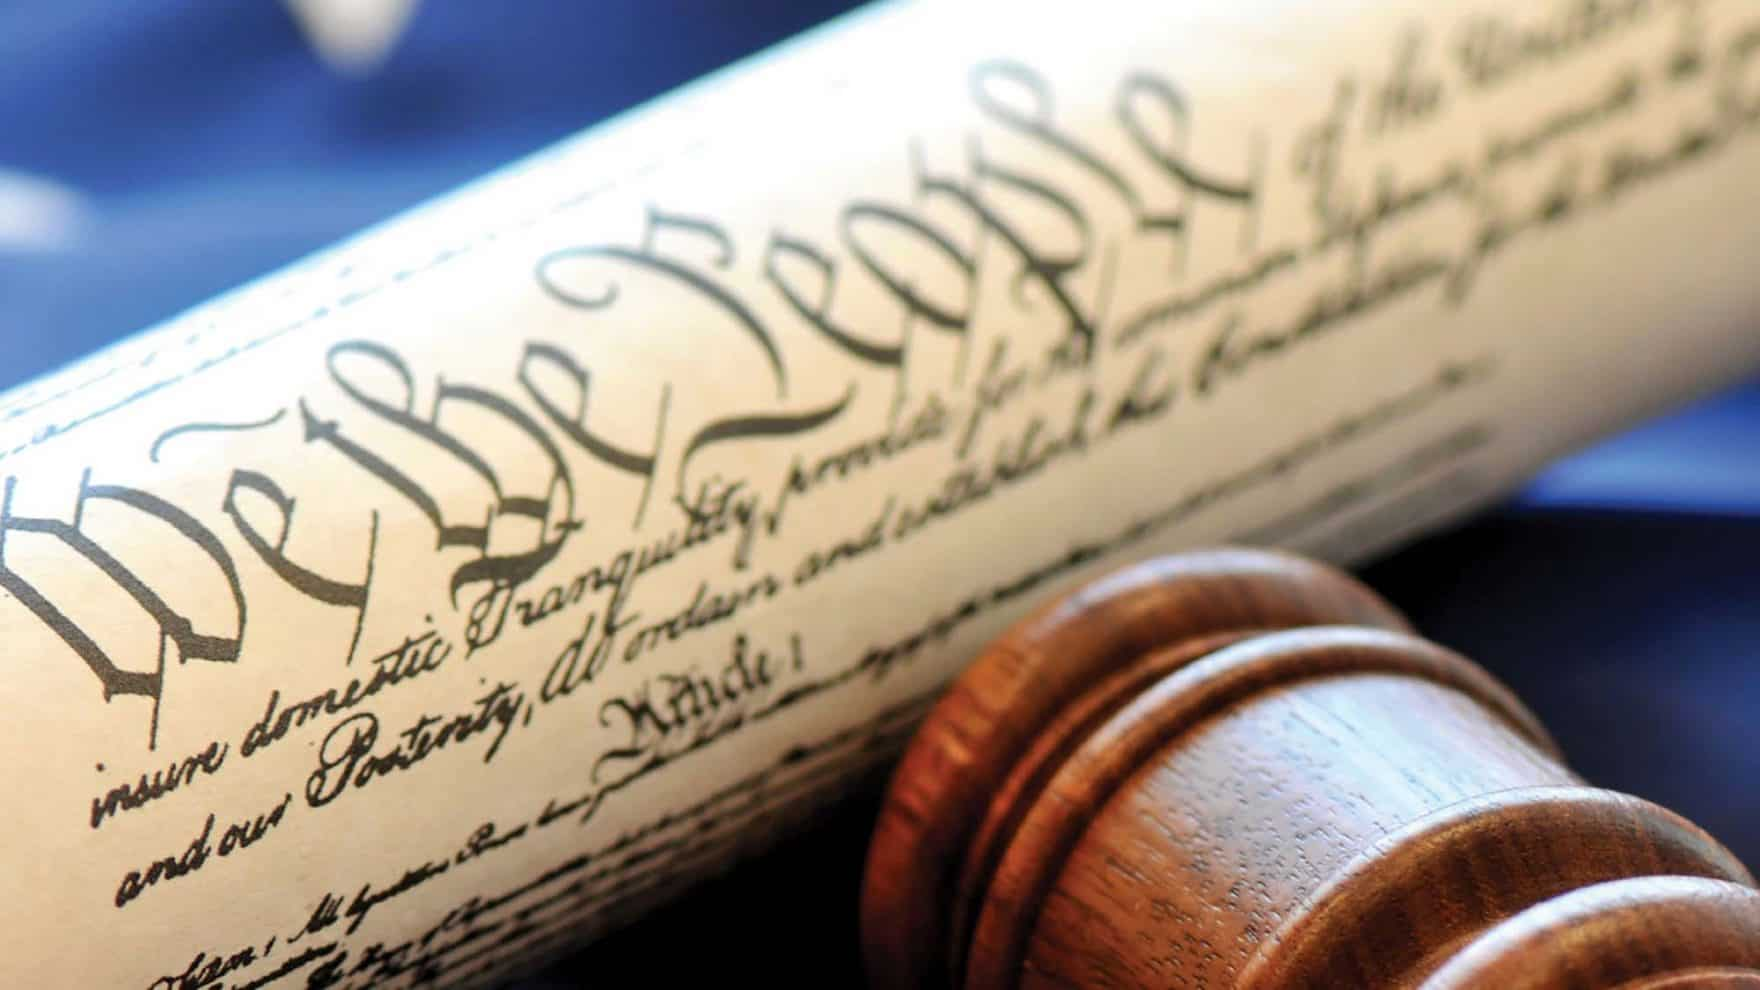 The U.S. Constitution Preamble and a gavel.